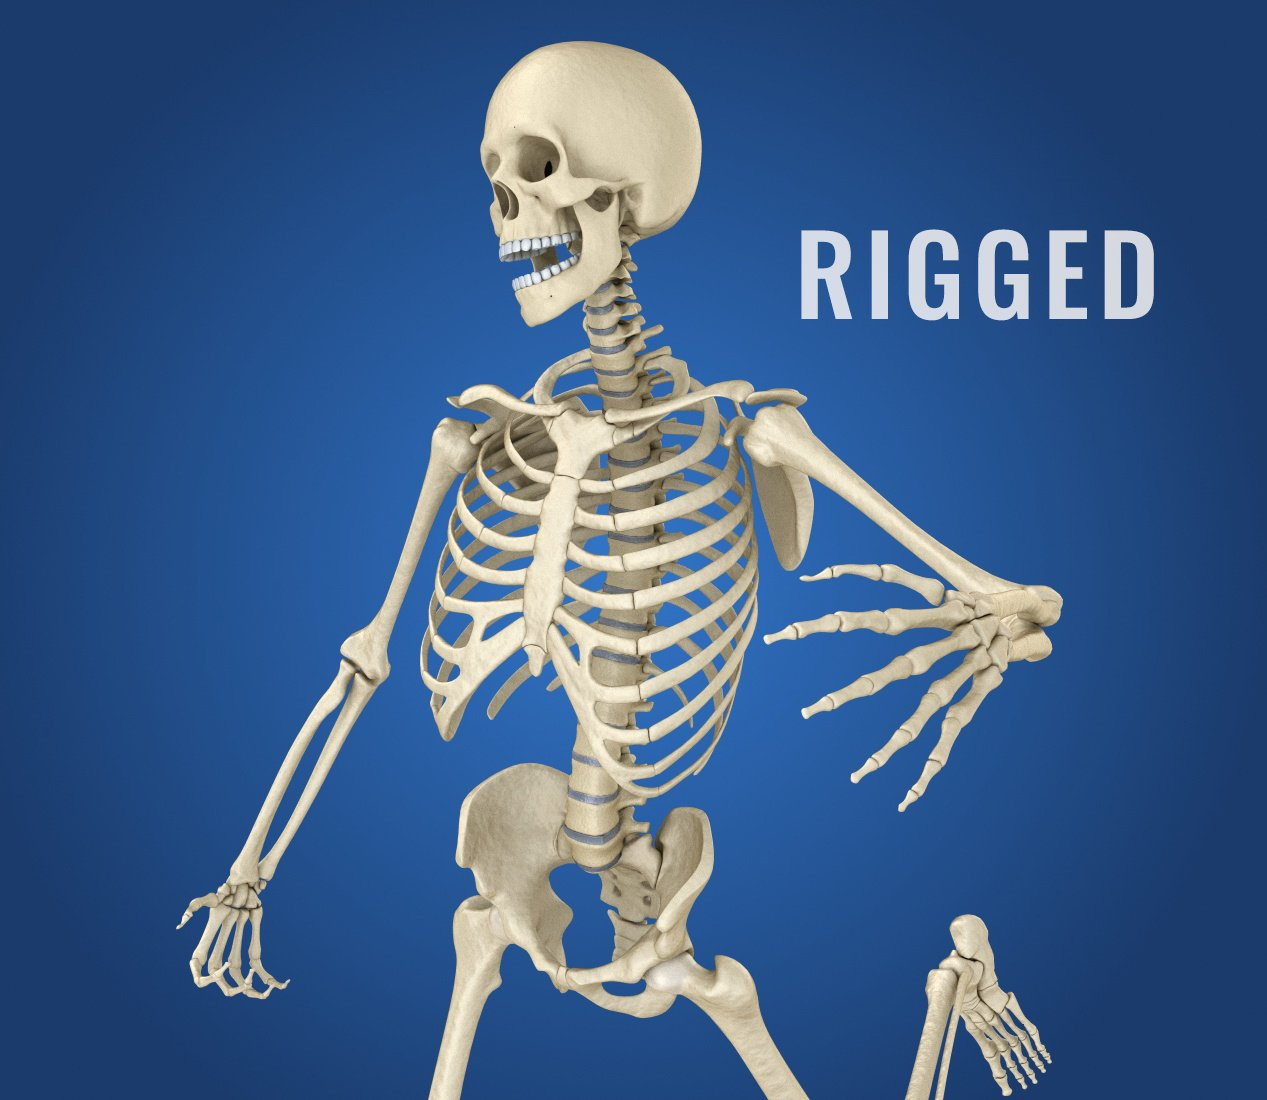 Human Skeleton Rigged 3D-Modell in Anatomie 3DExport